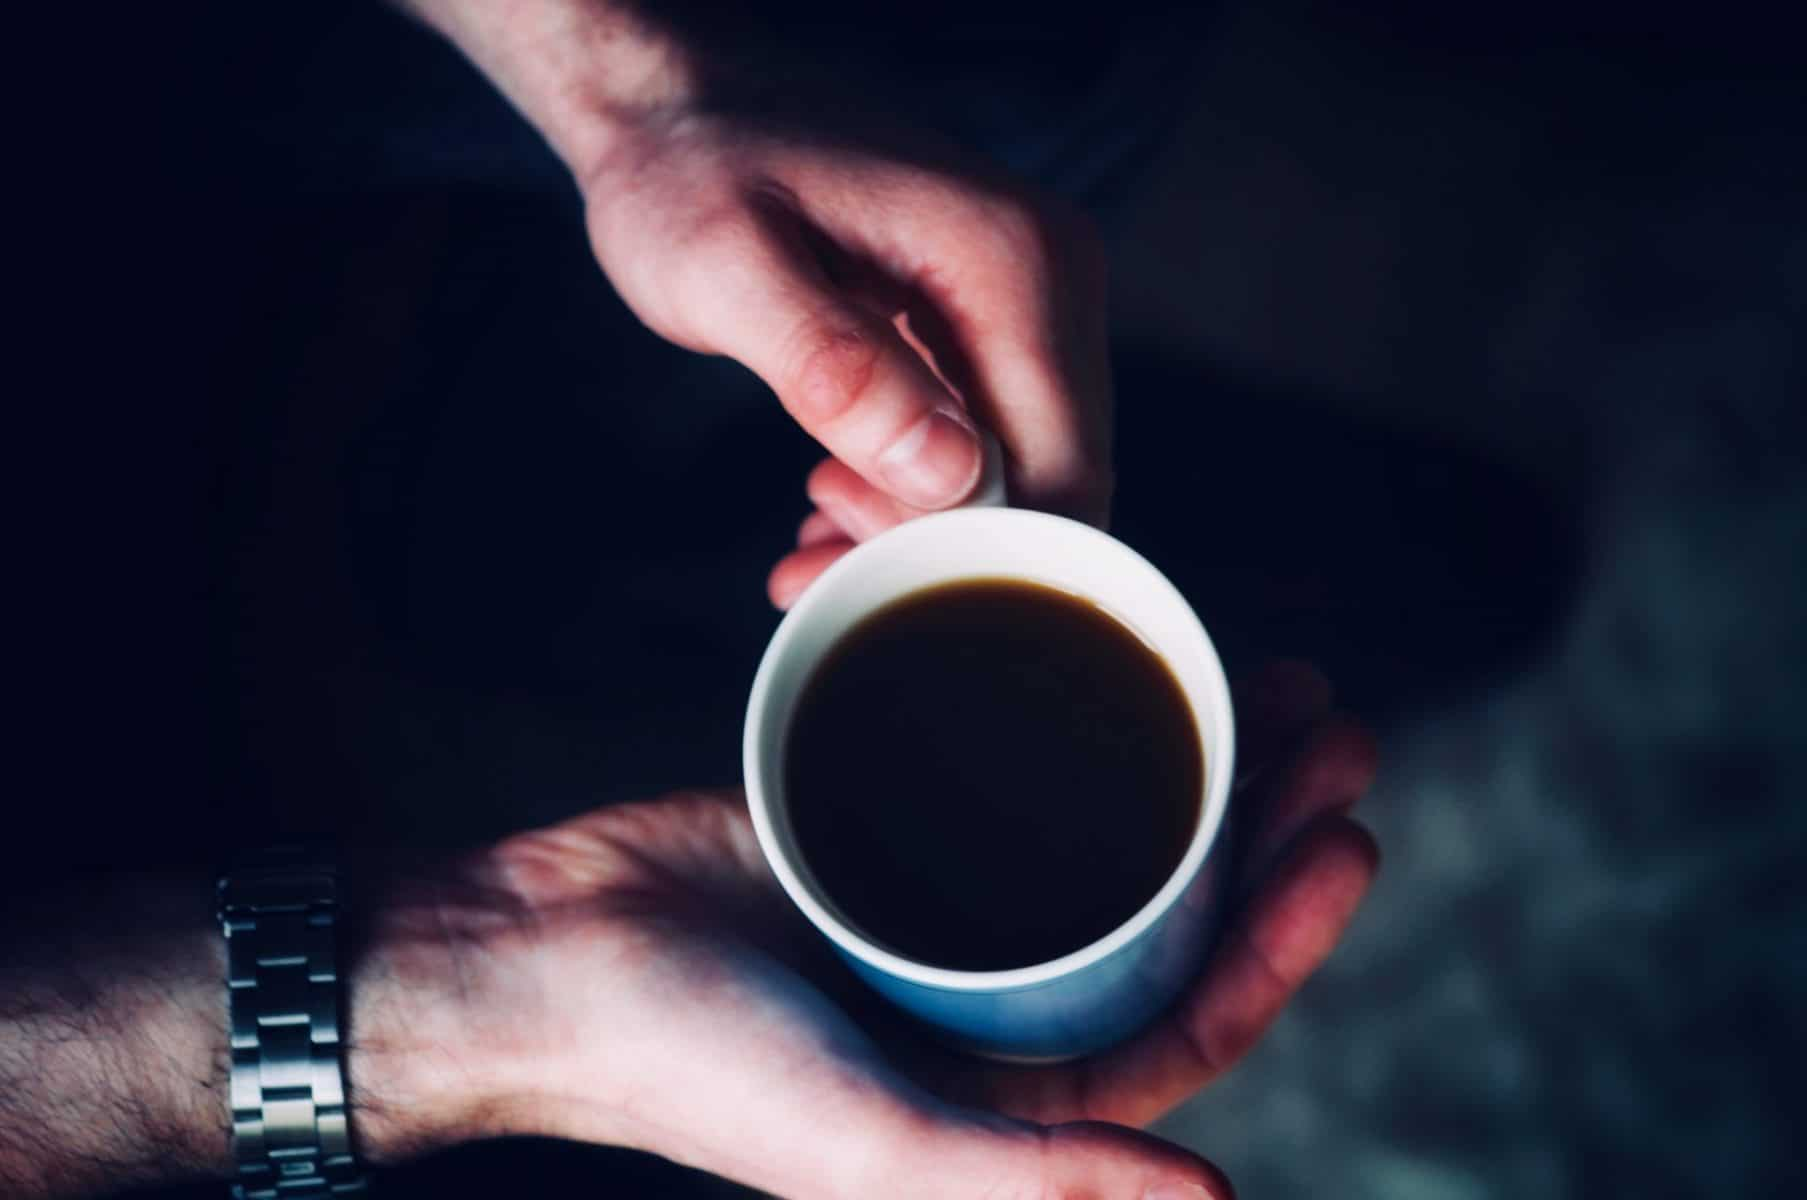 irritable bowel syndrome cup of coffee having Therapy stress depression IBS anxiety at Neil Cox Hypnotherapy St Austell Cornwall